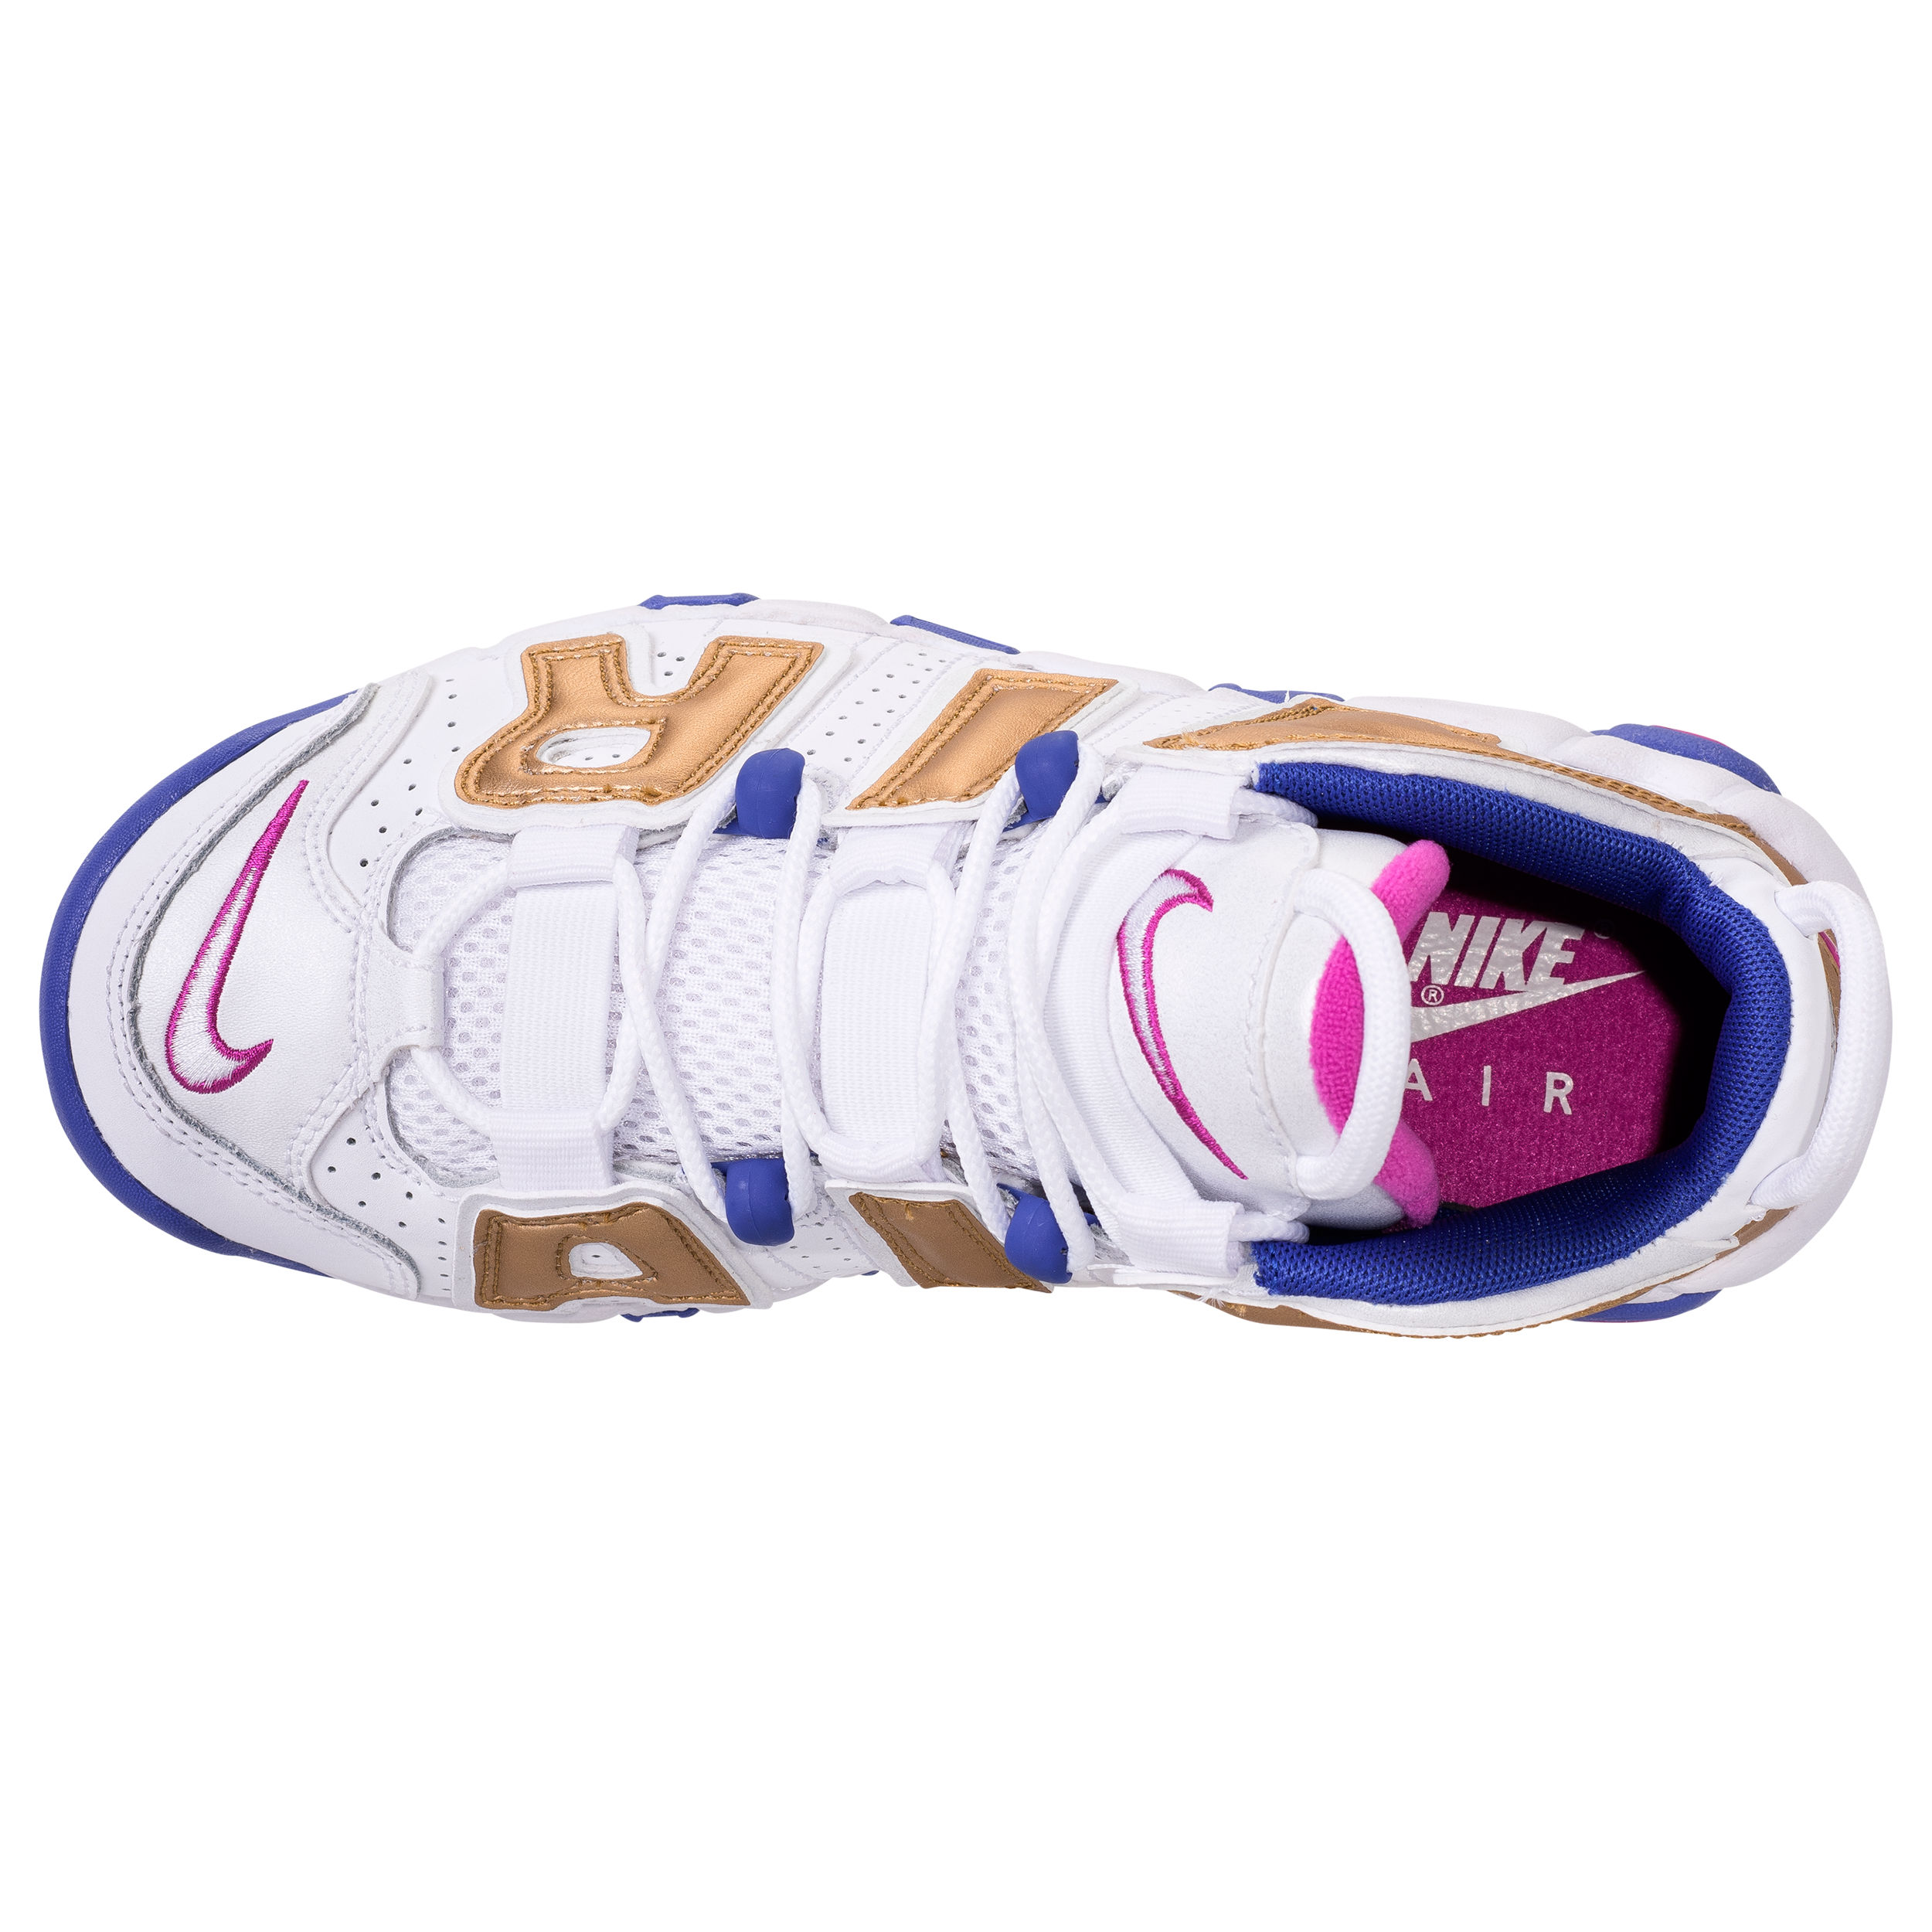 NIKE AIR MORE UPTEMPO GS WHITE:FUSCIA BLAST:METALLIC GOLD:RACER BLUE 4